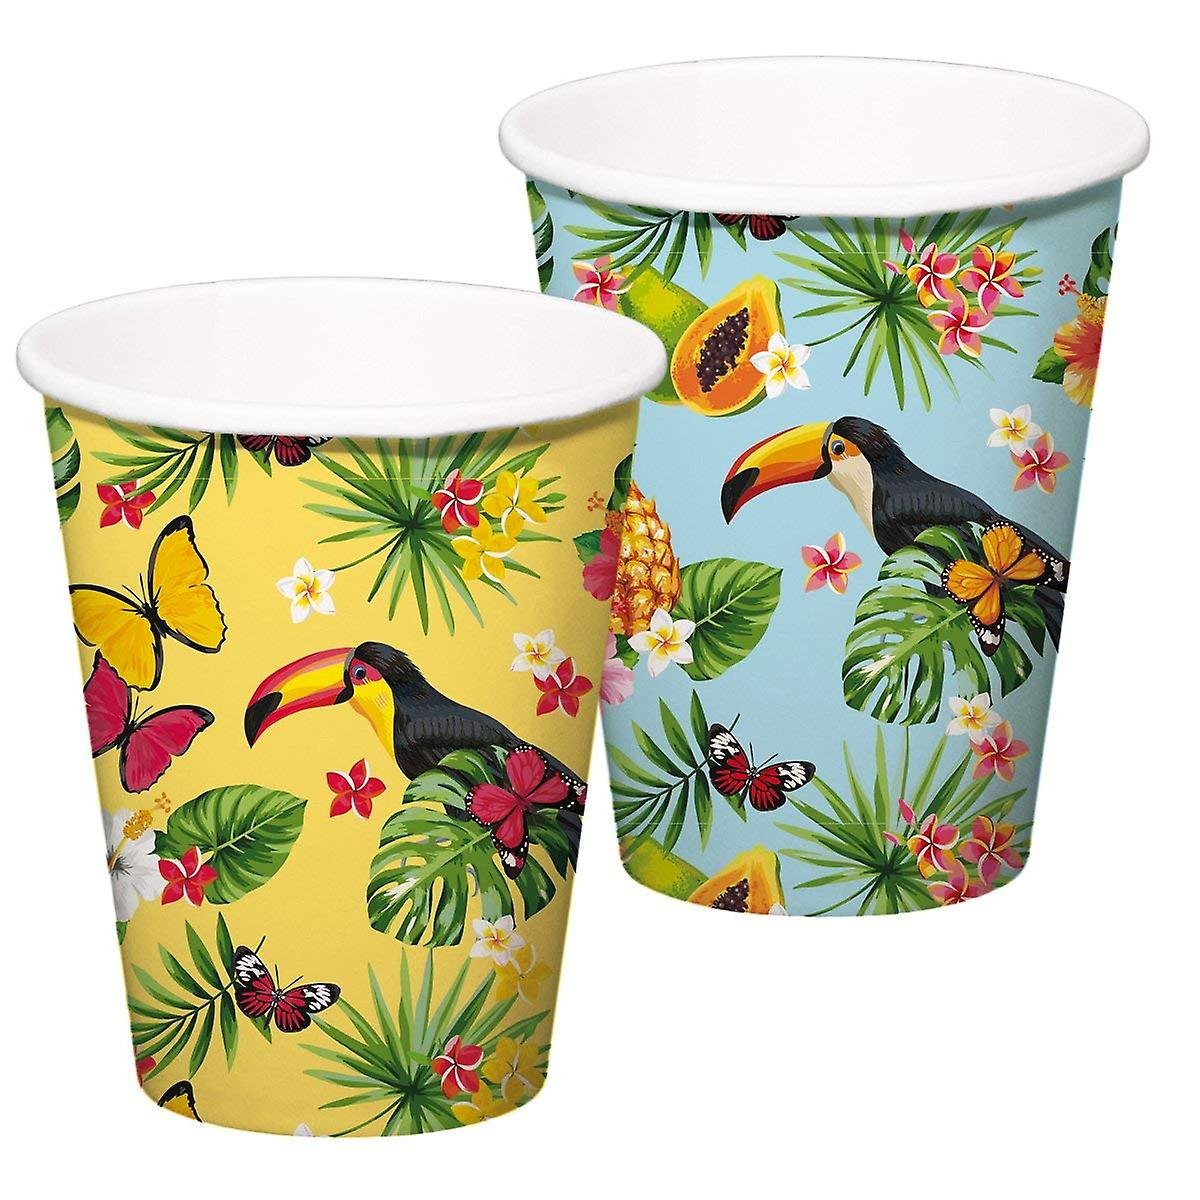 Sommerparty Deko Tukan Sommer Party Xl Becher 350 Ml 8 Stück Tropical Tukanparty Deko